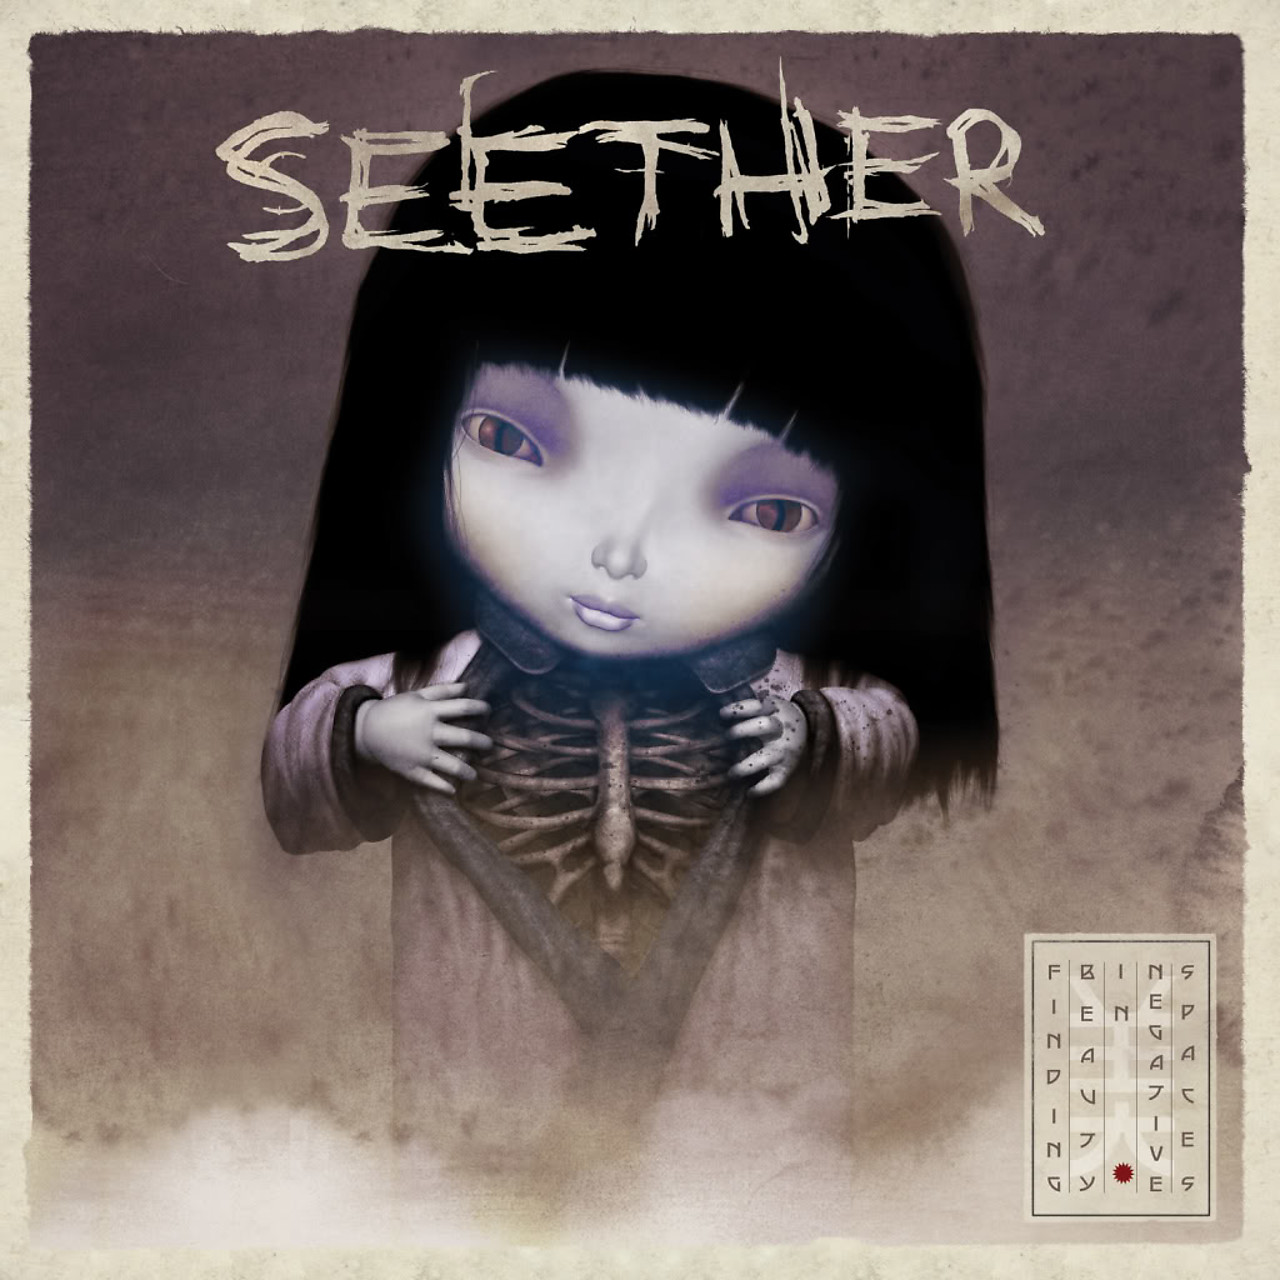 IN SPACES BEAUTY NEGATIVE BAIXAR FINDING CD SEETHER